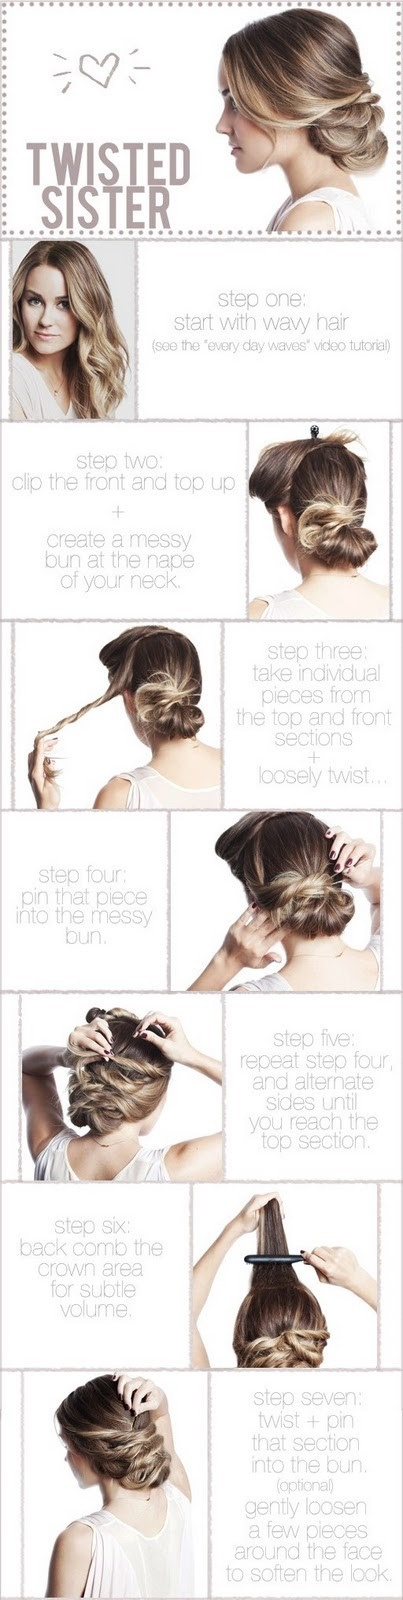 Split the rest of your hair in two sections and braid each section